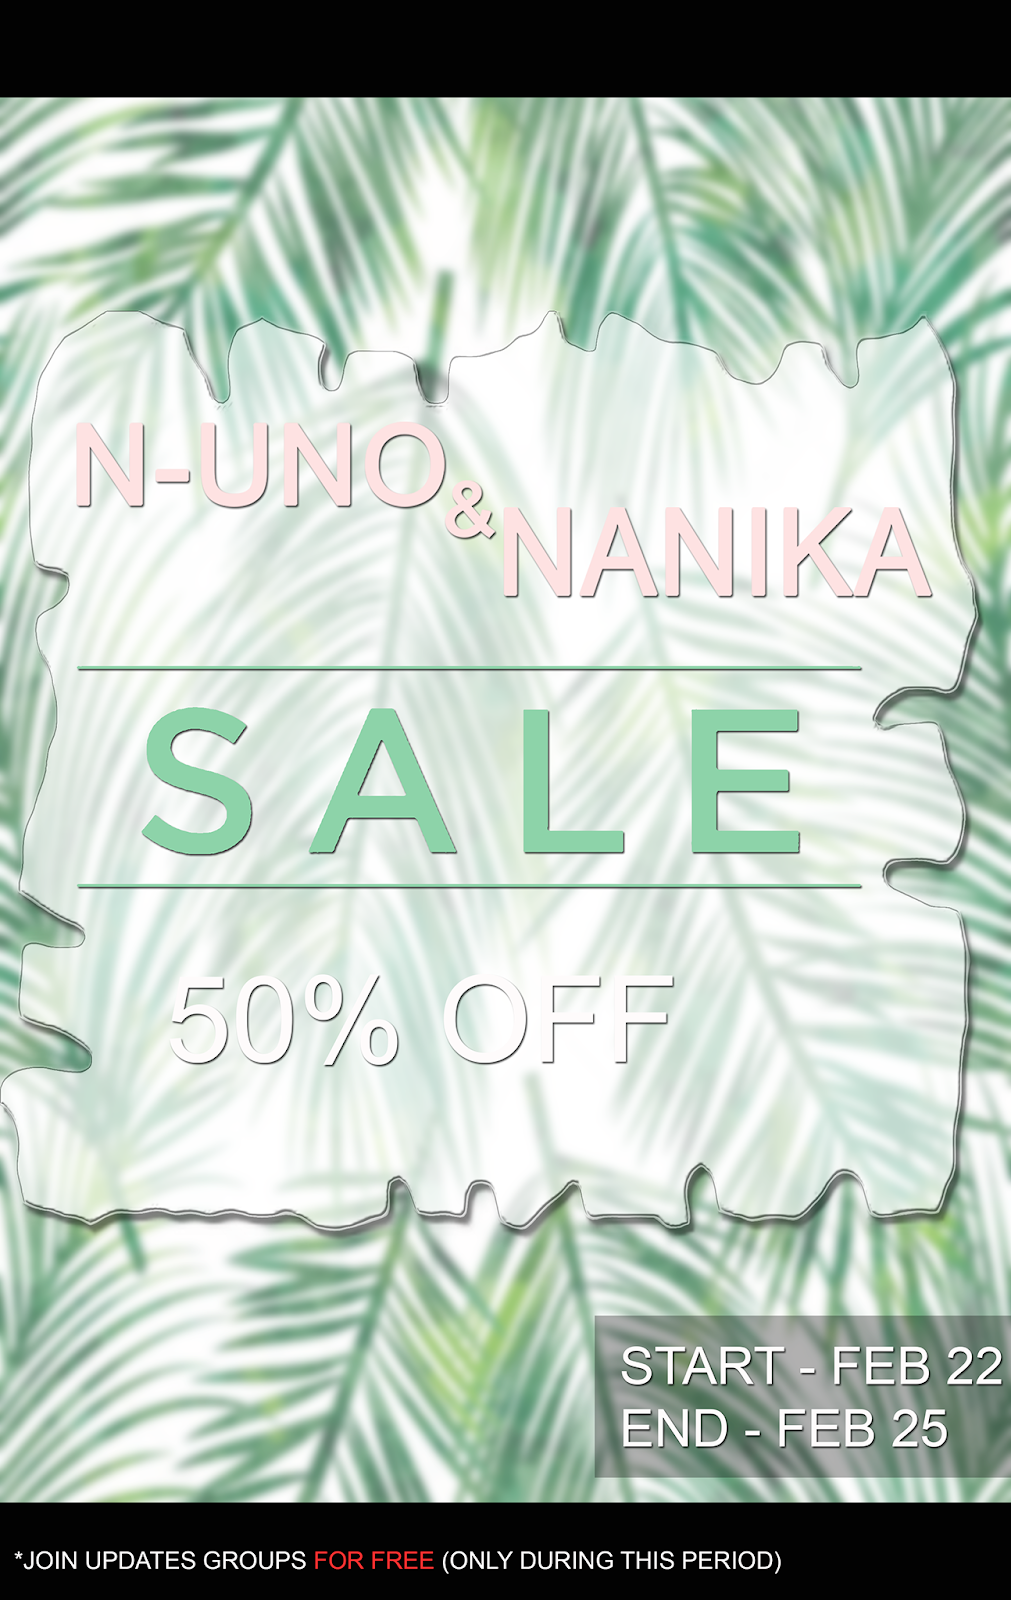 LAST DAY OF N-Uno SALE